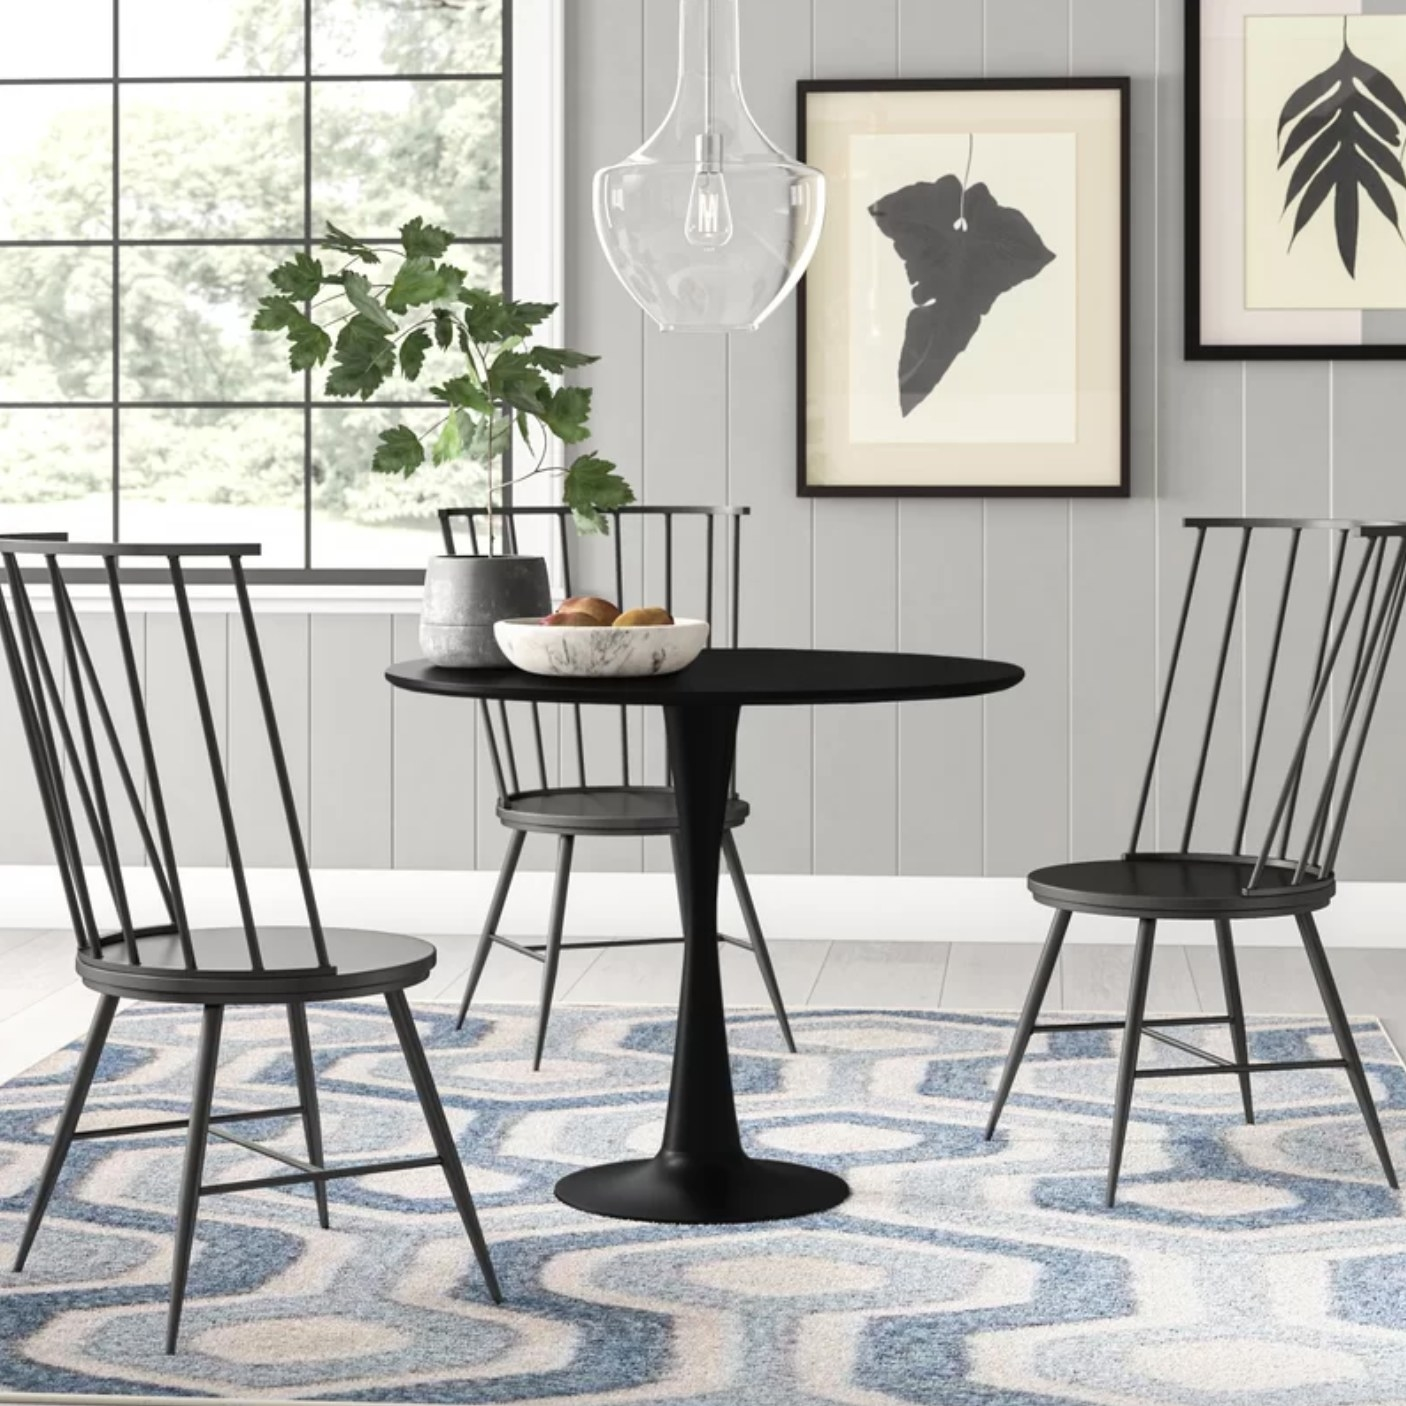 The dining table in black